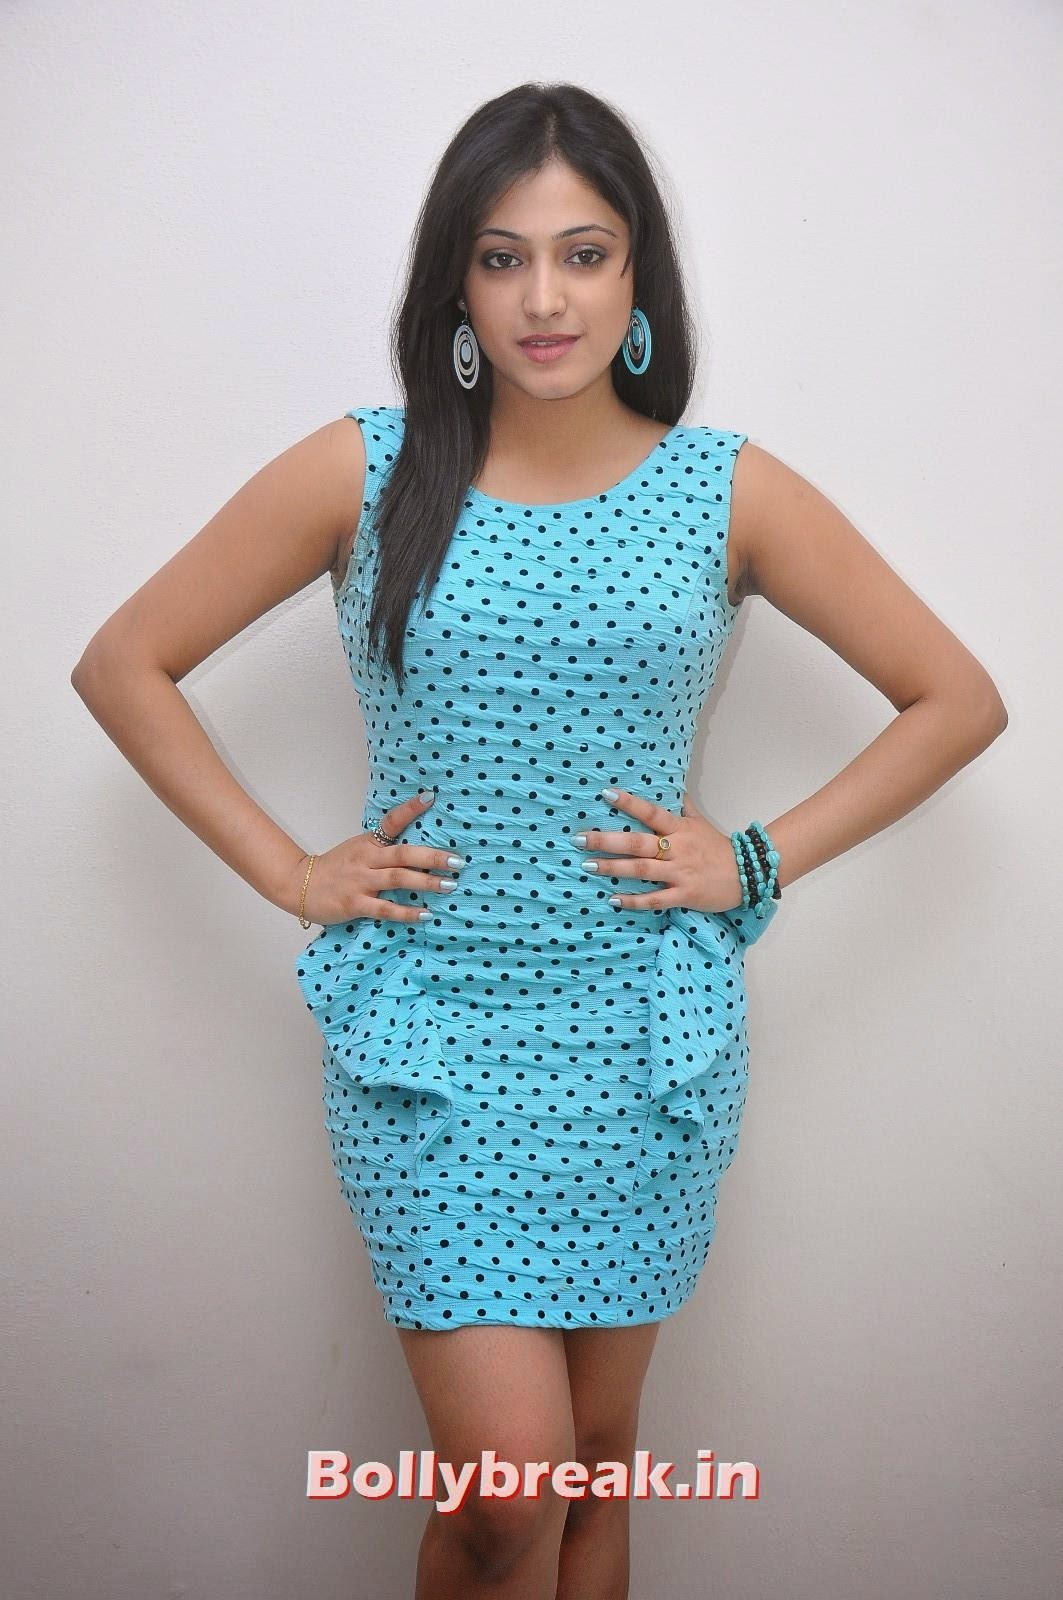 , Haripriya Hot Tatto Photoshoot Pics in Sky Blue Dress